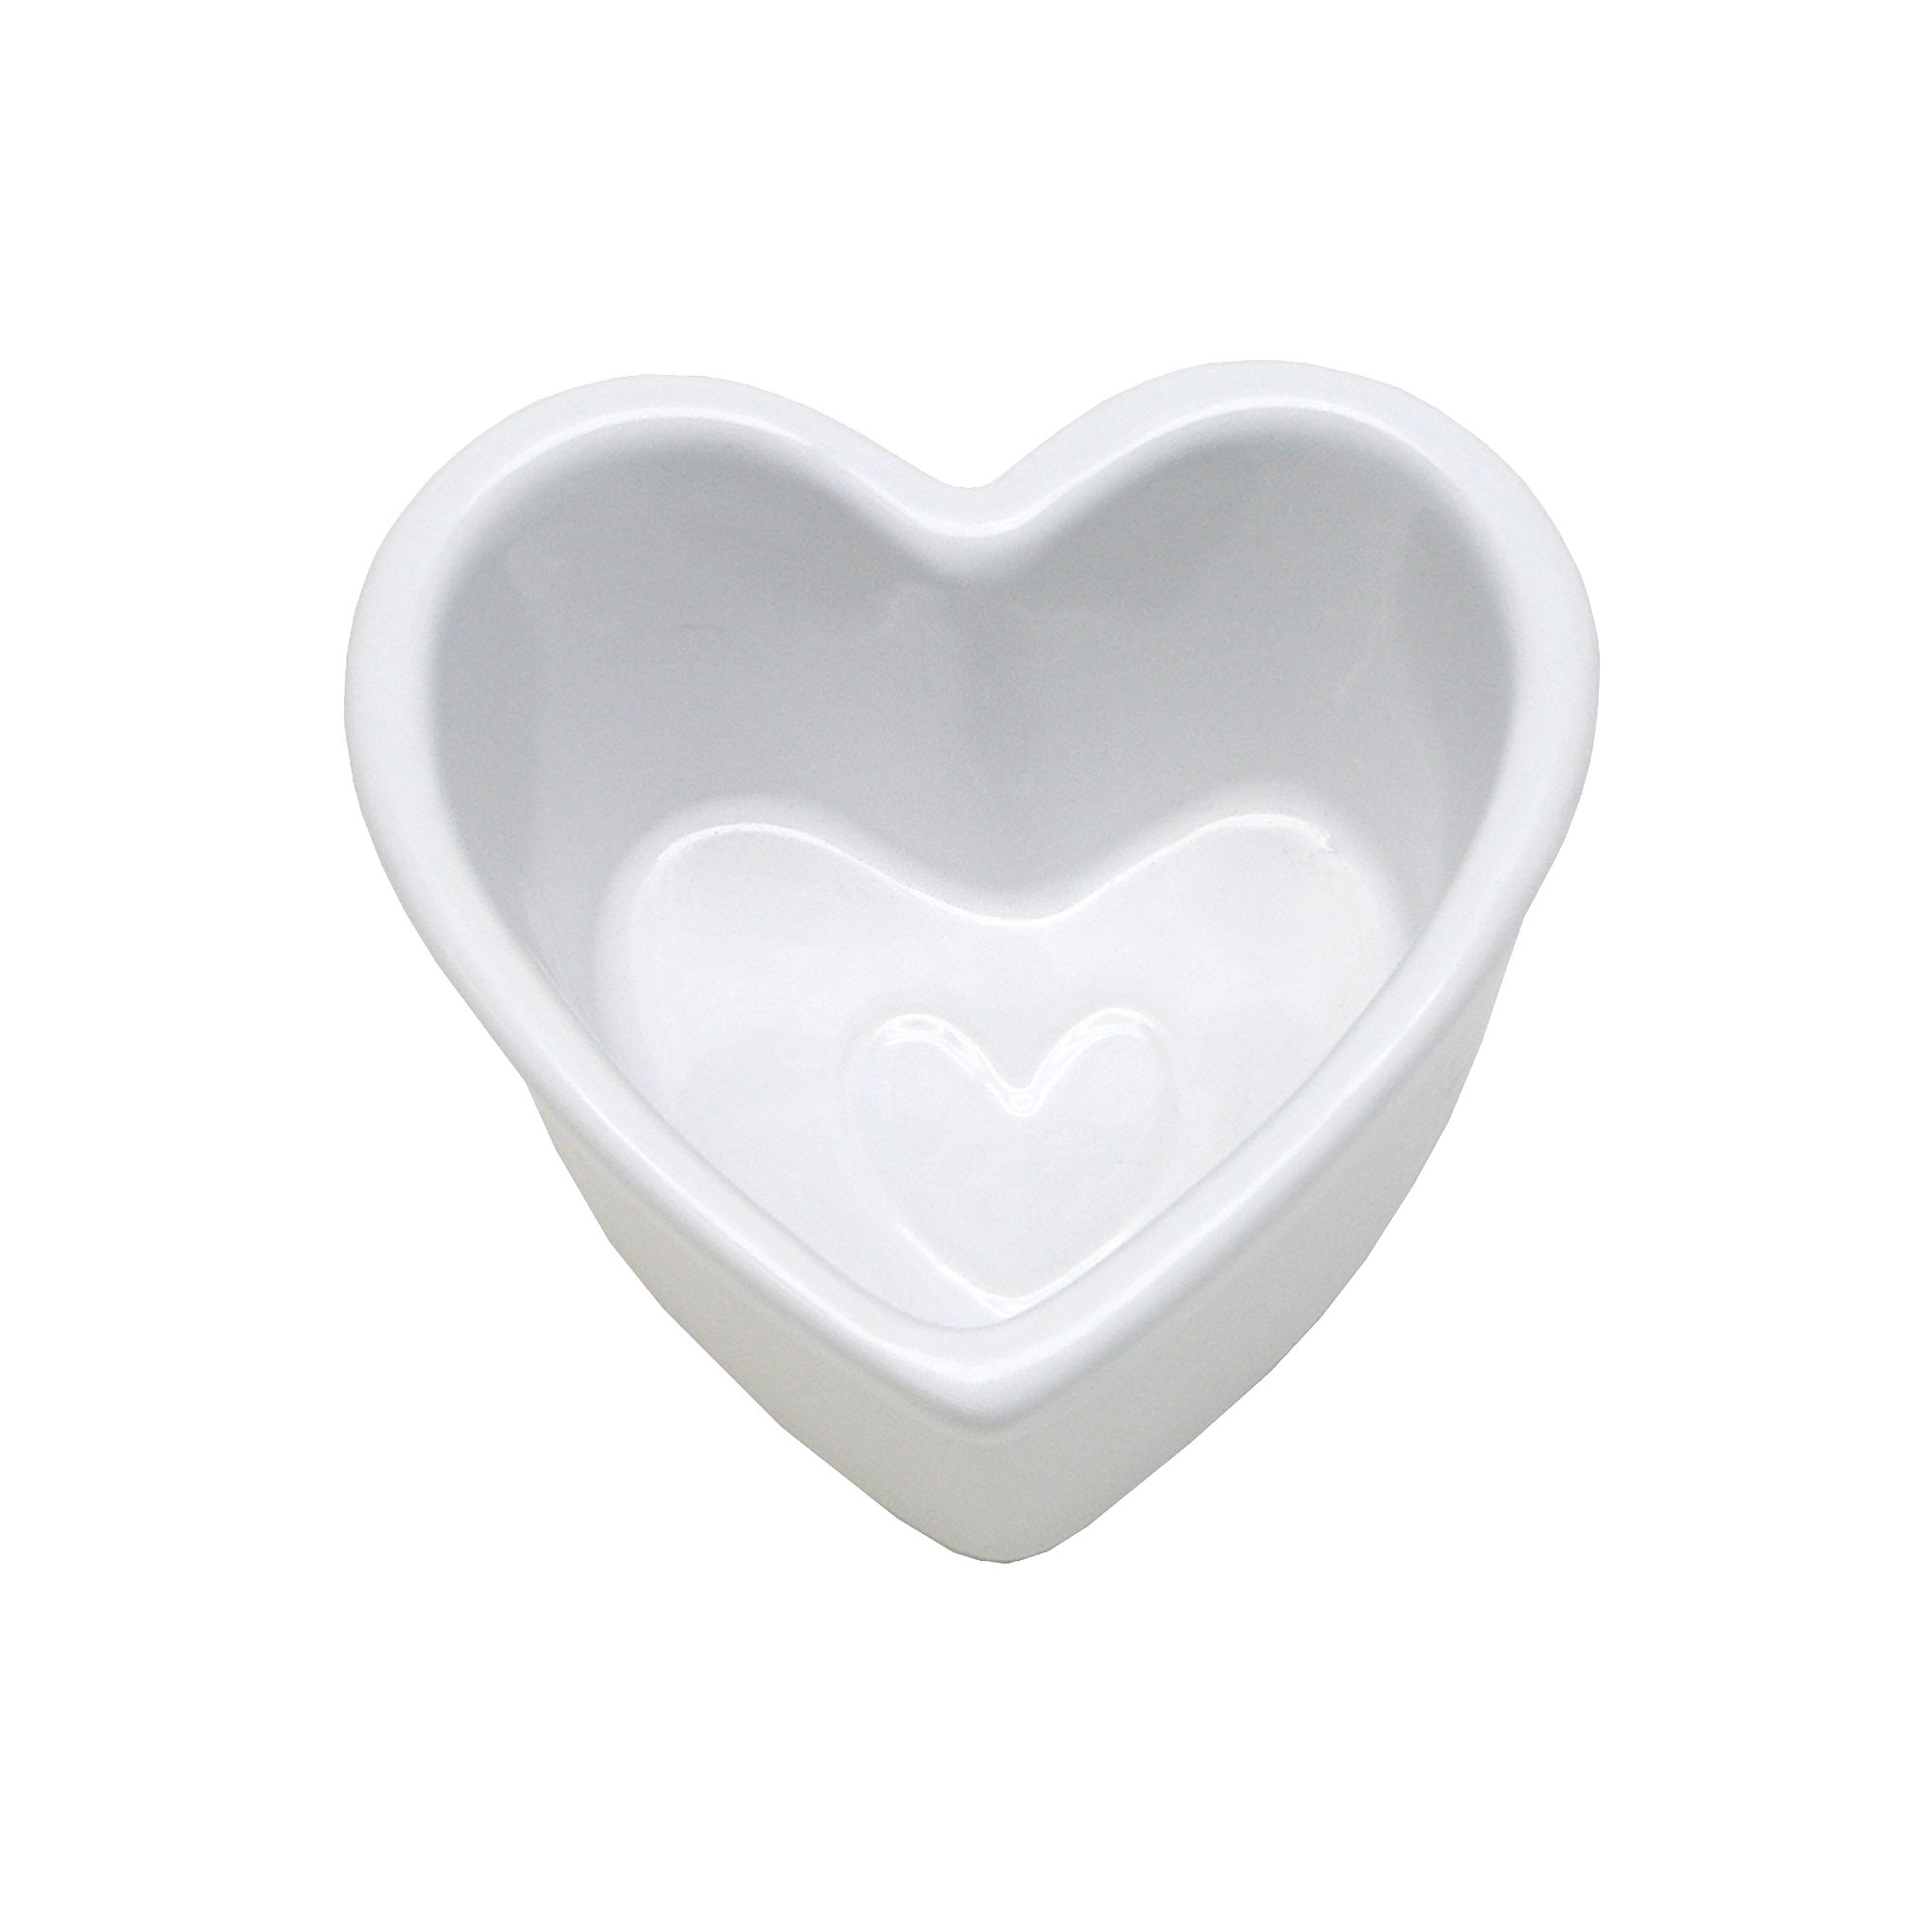 White Country Heart Collection Ramekin